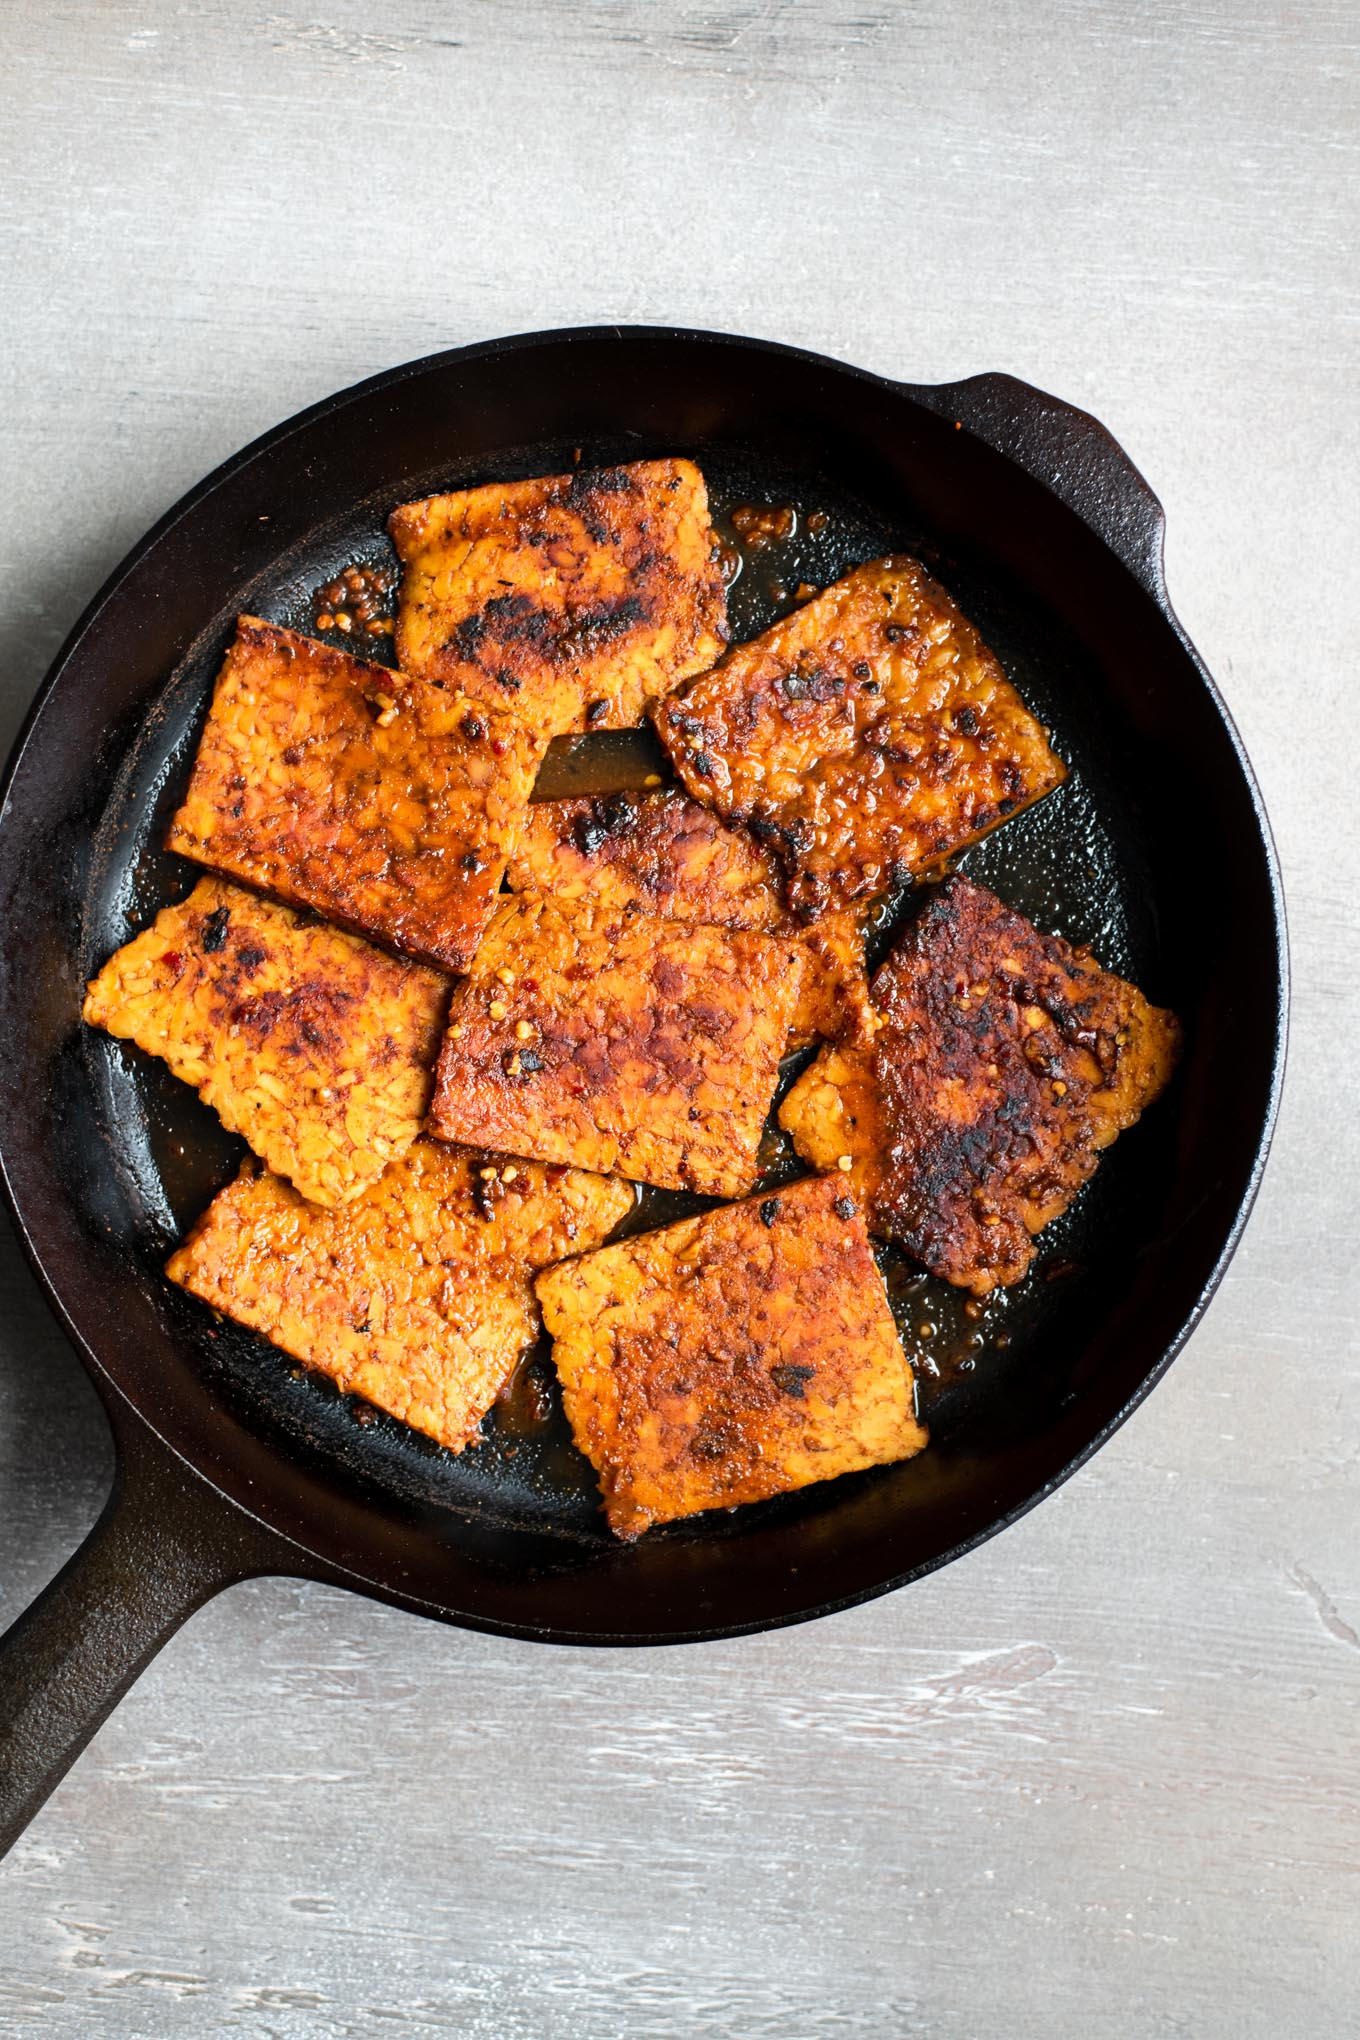 The corned tempeh in the skillet after the marinade is added